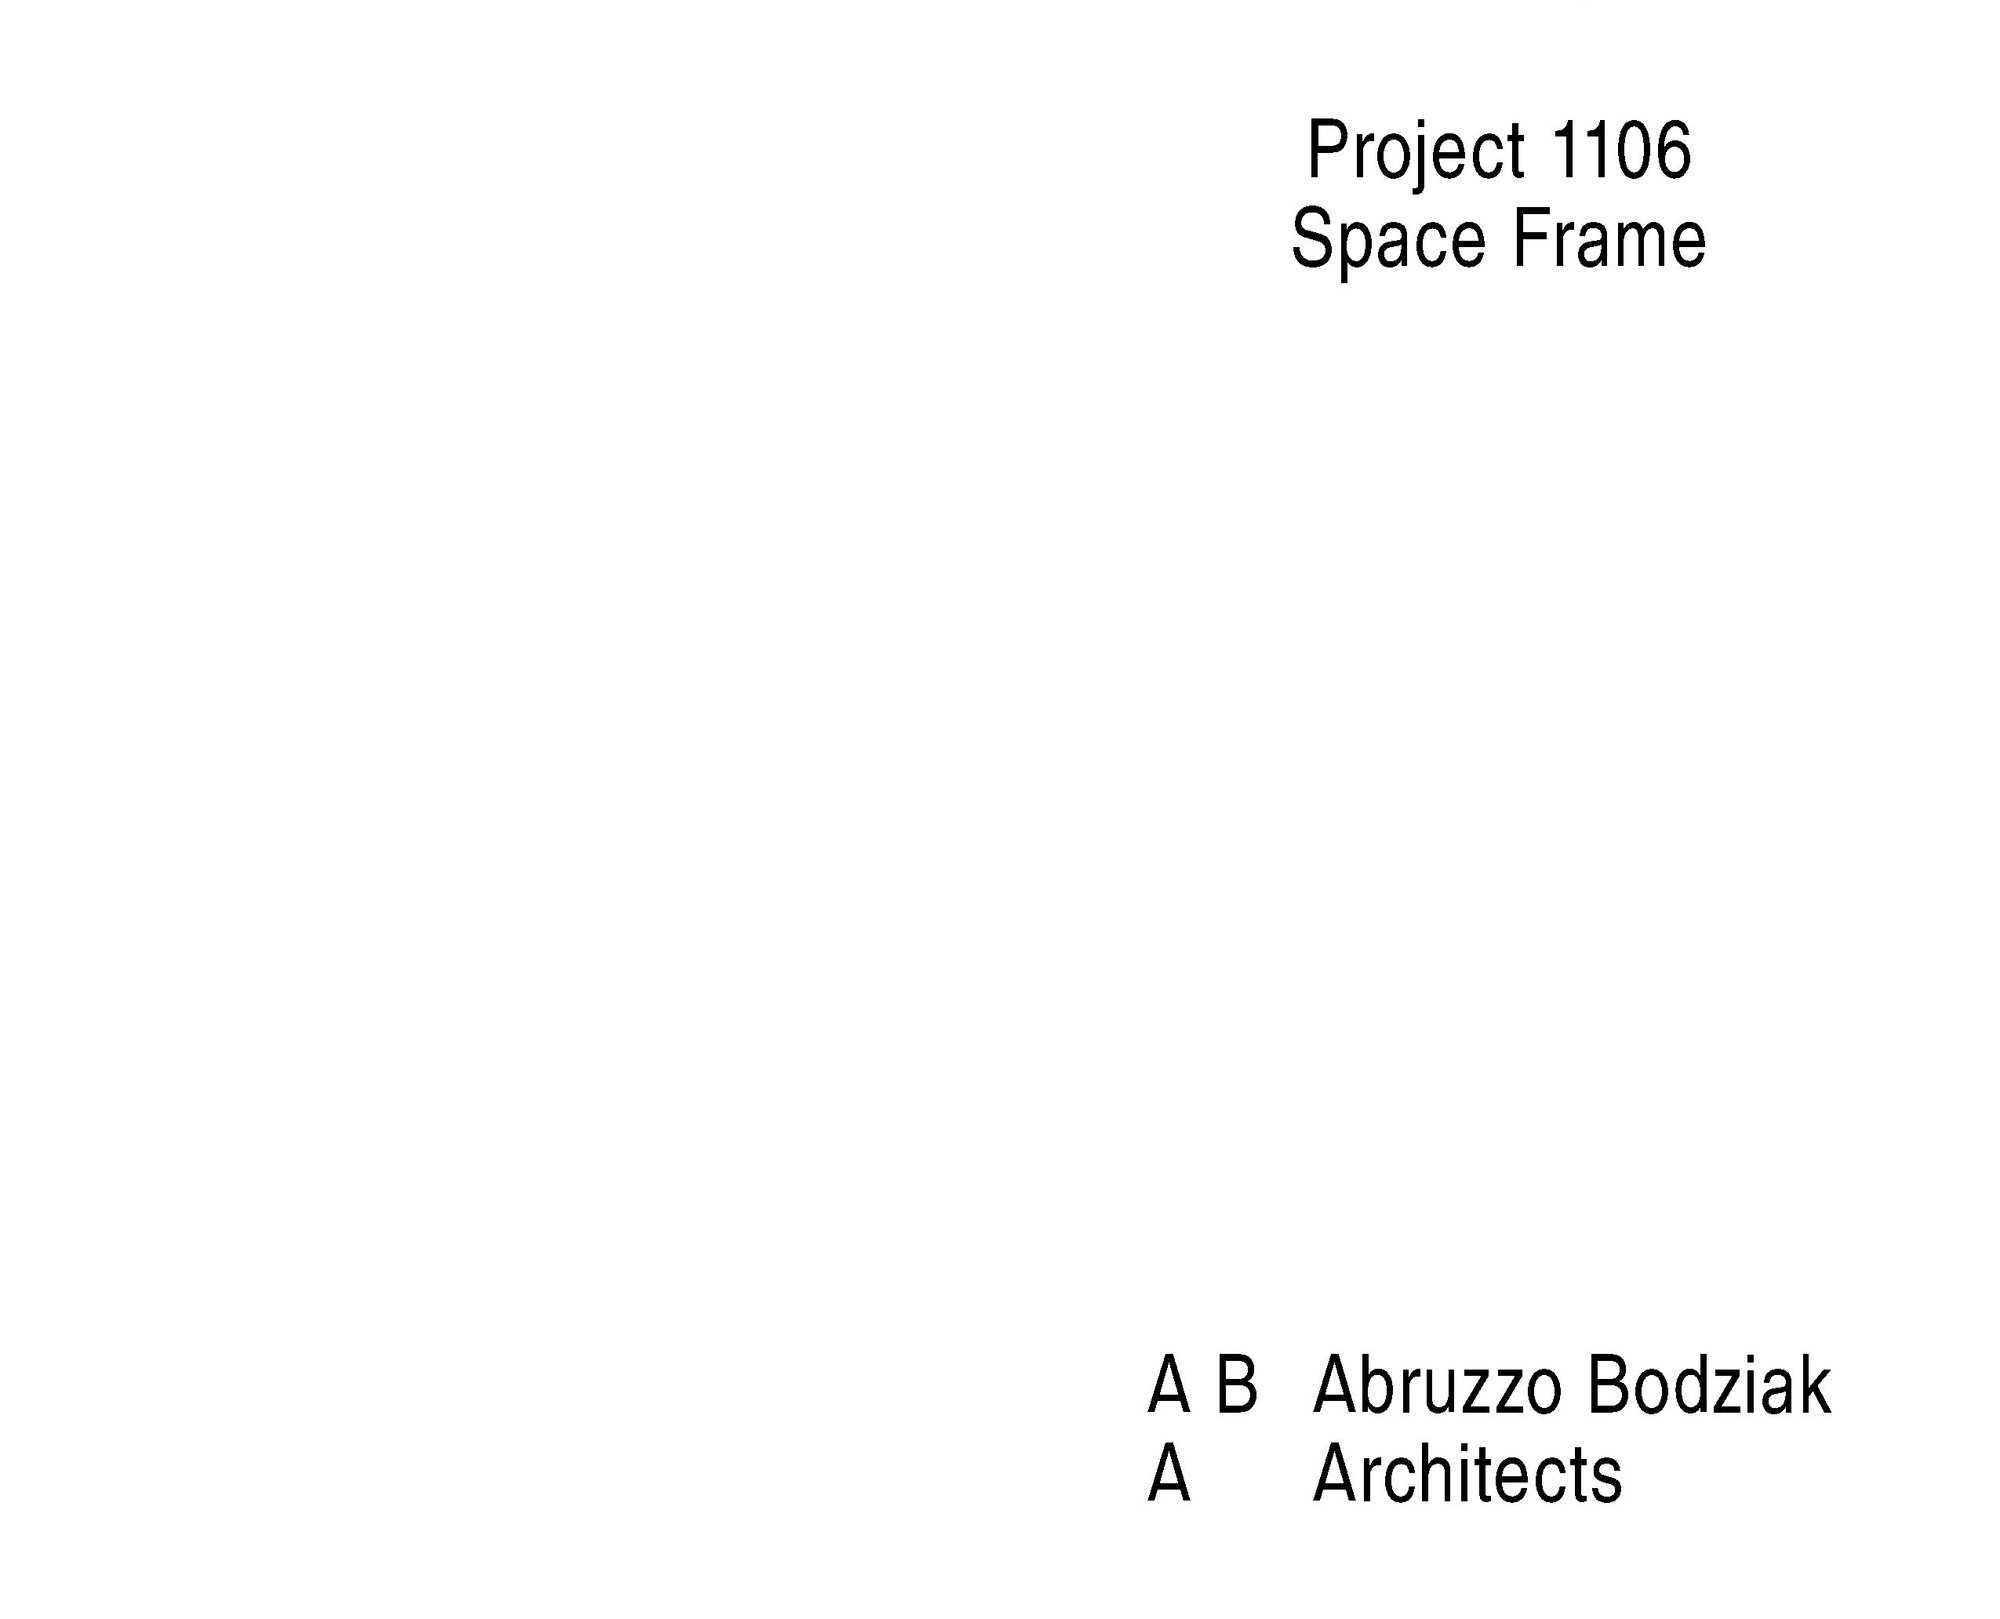 1106 space frame project page 02 2000 xxx q85